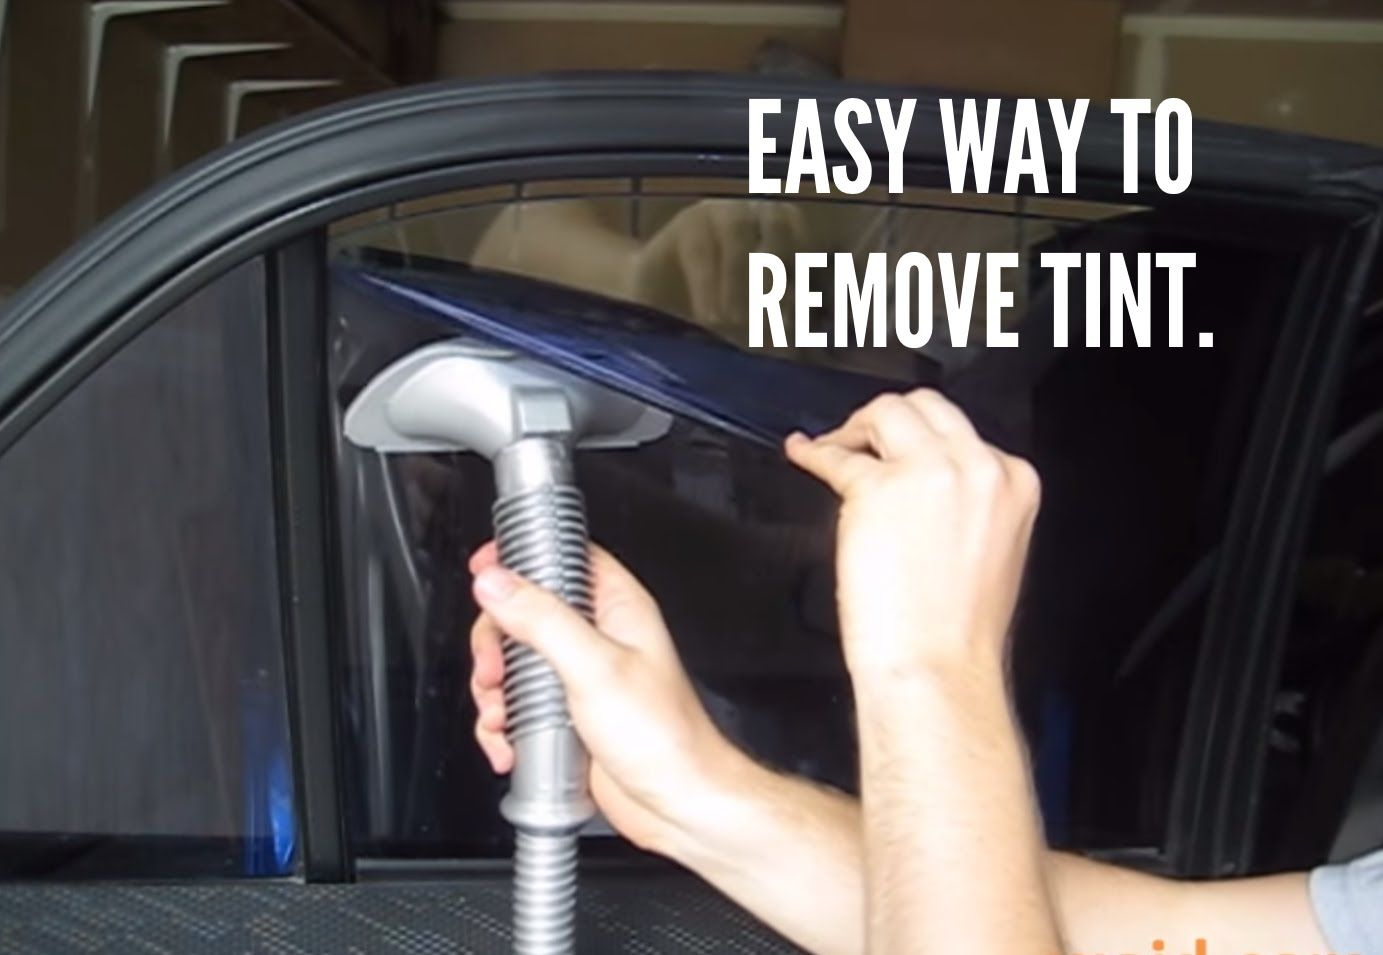 Easy way to remove window tint howto victoryautomn http